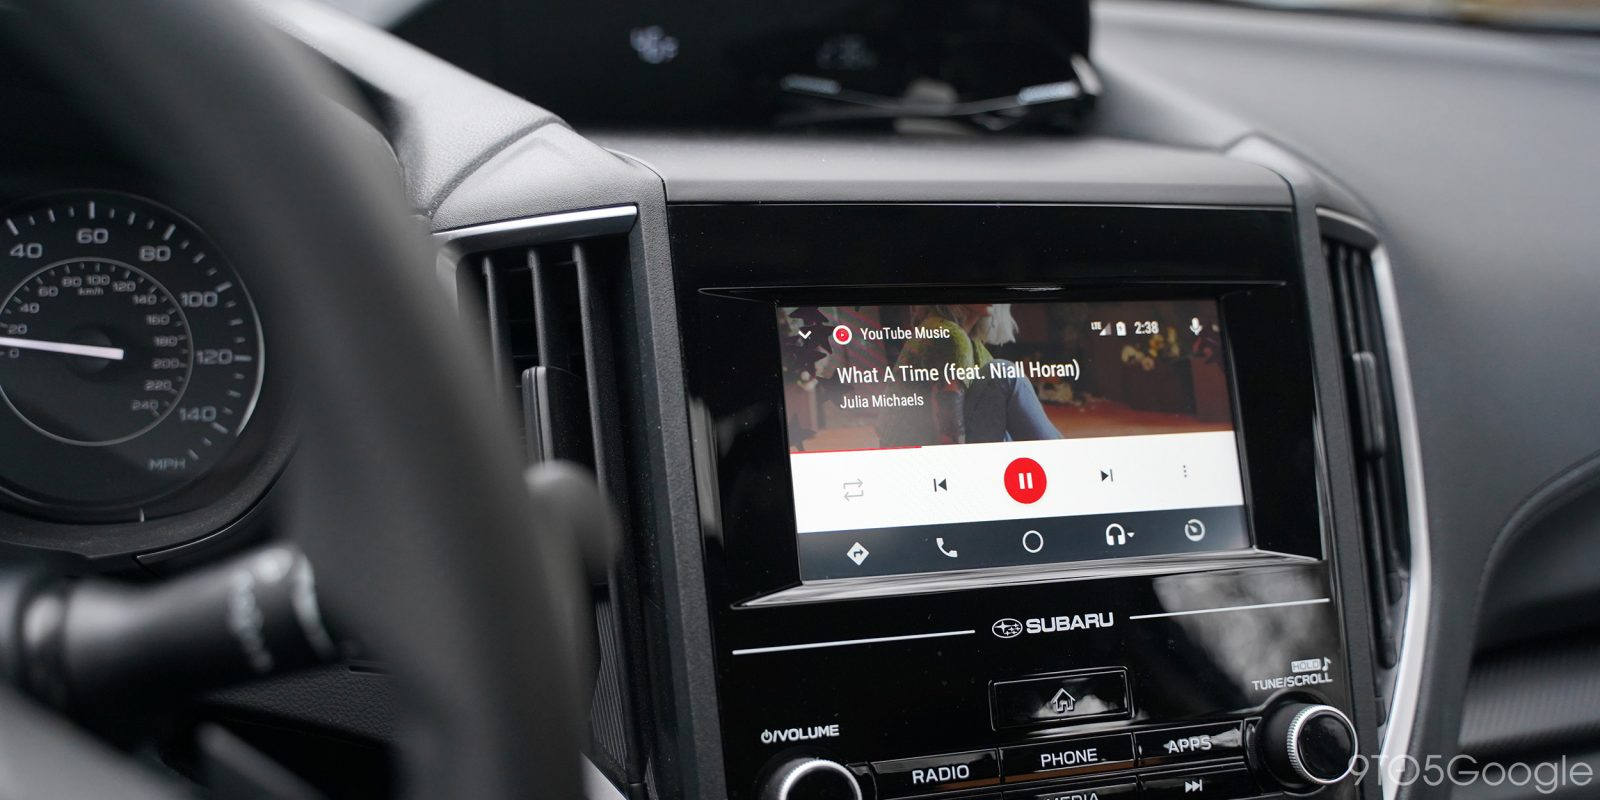 Galaxy S10, One UI users report Android Auto issues - 9to5Google